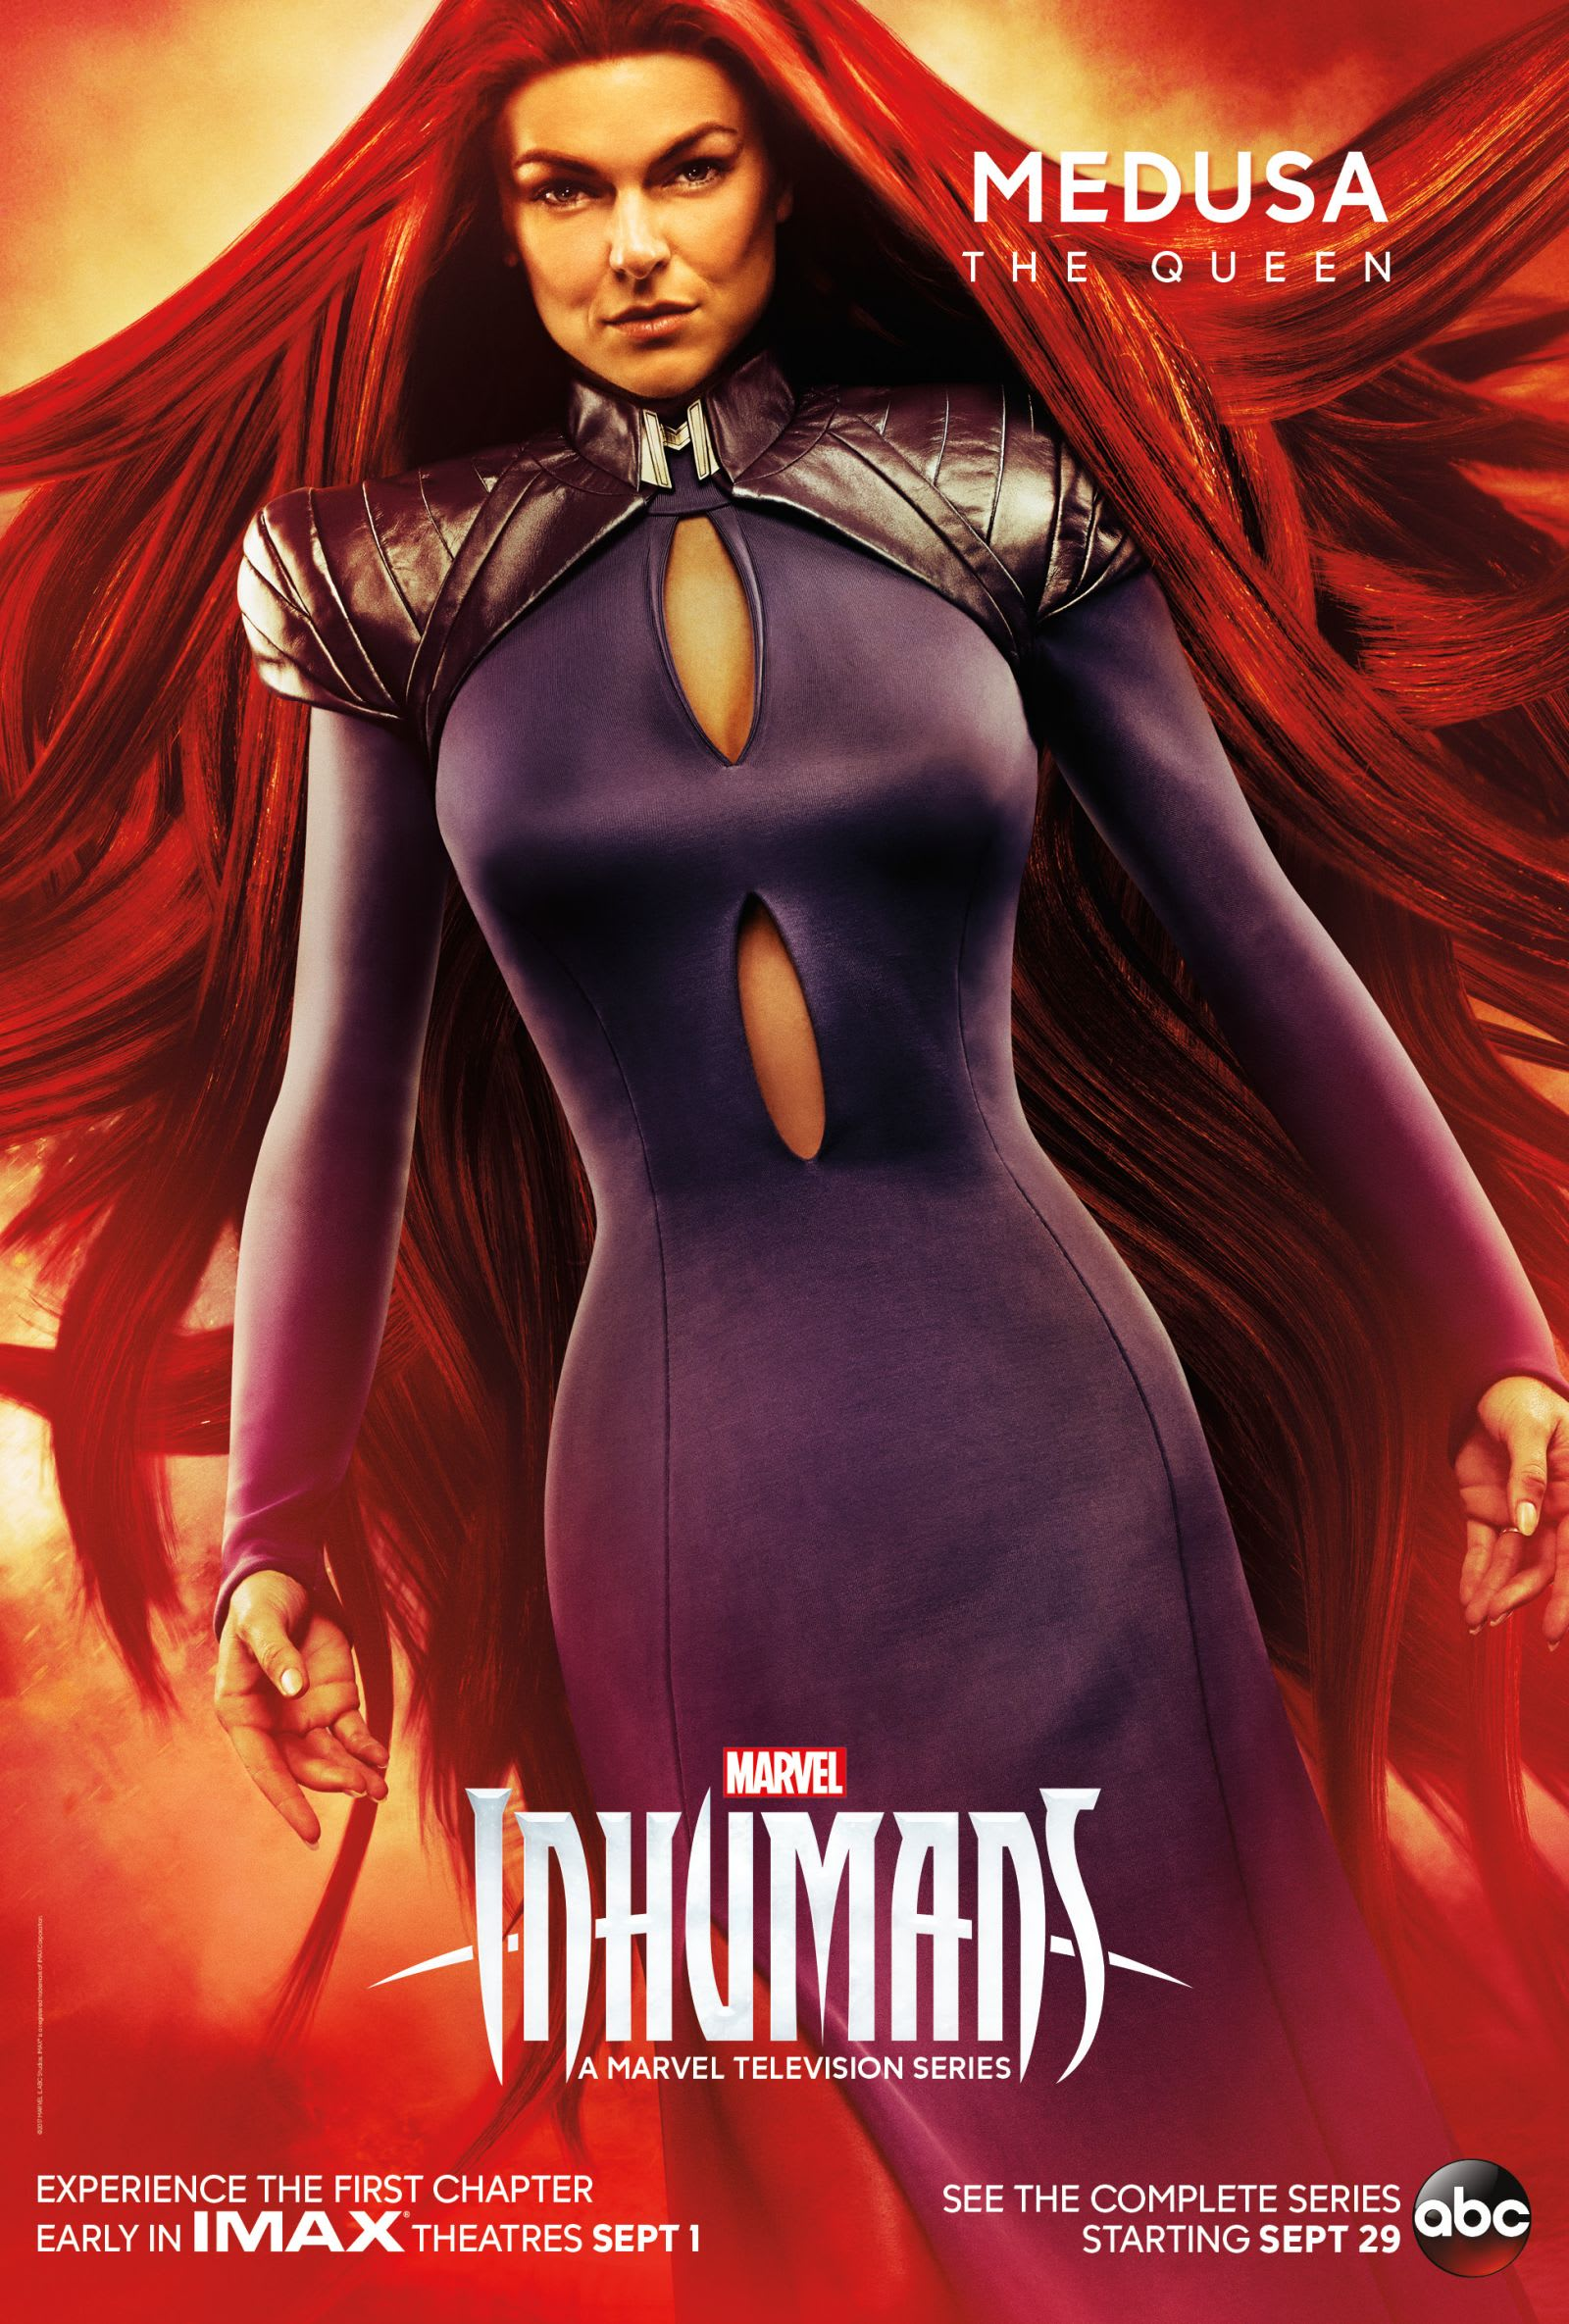 Marvel filmed Inhumans in Hawaii's forests and cities